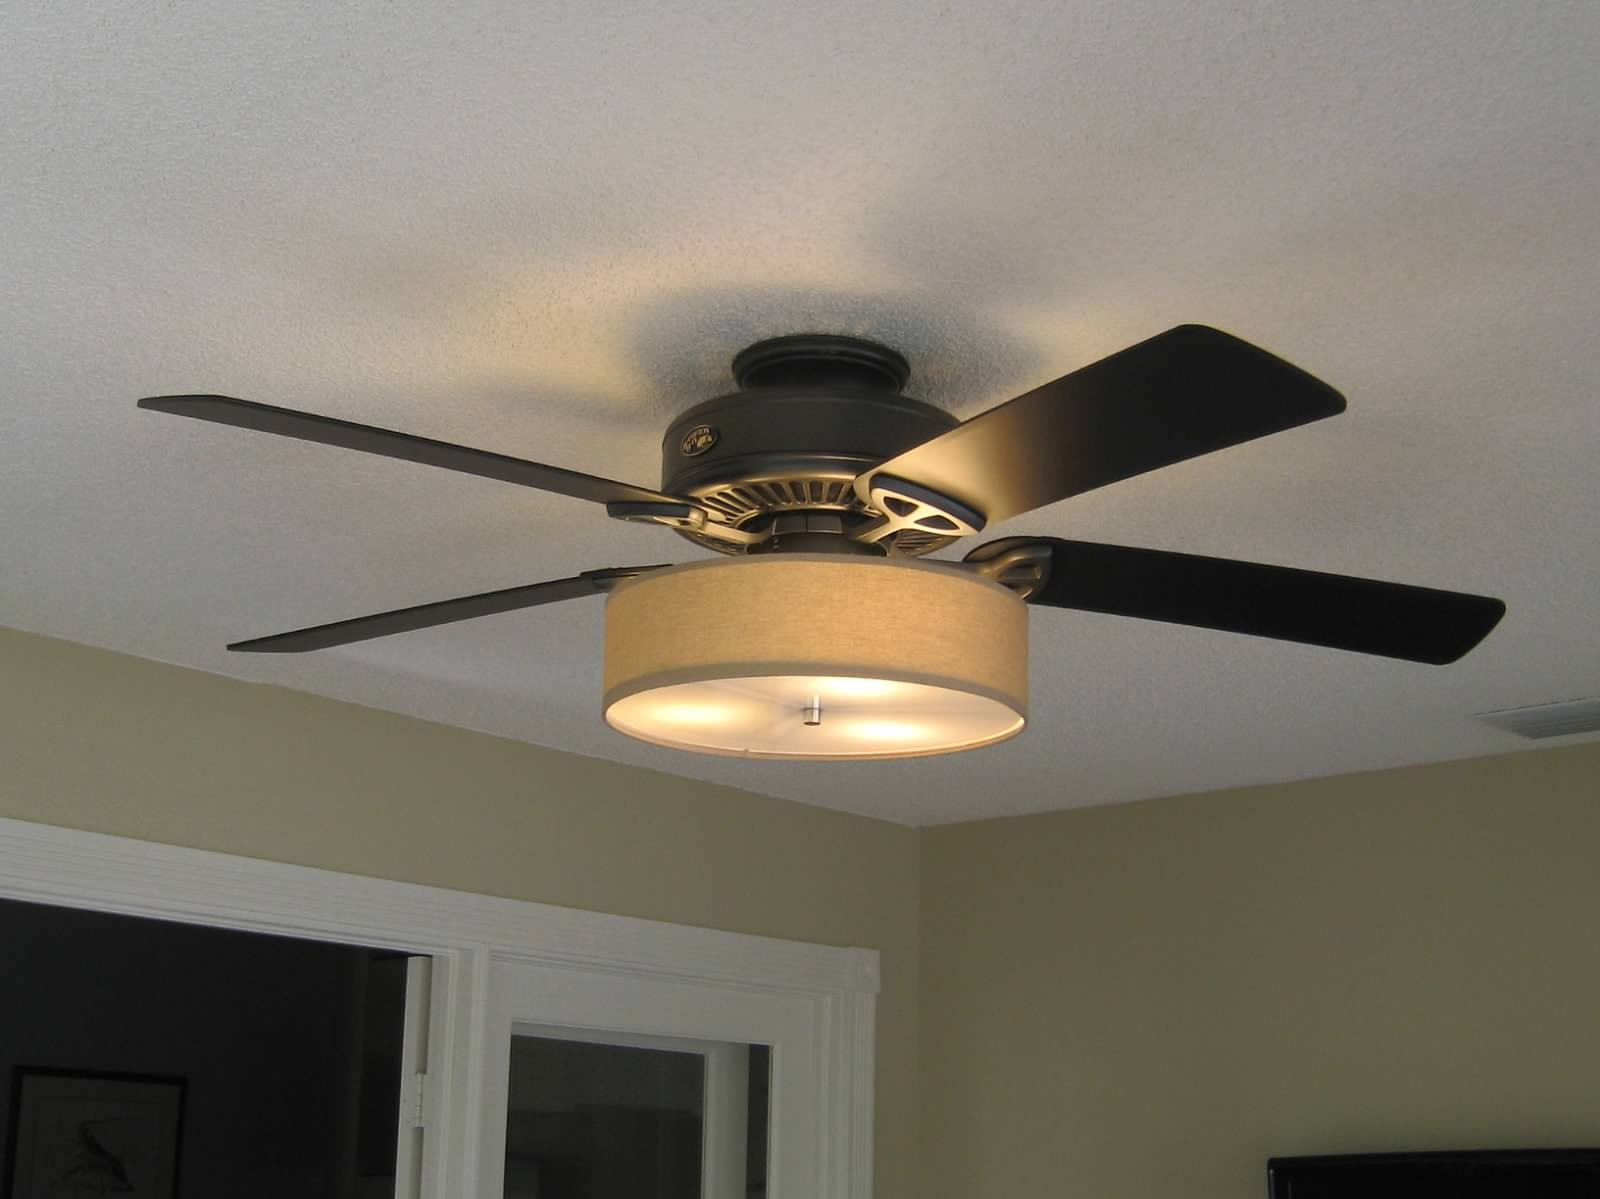 Ceiling Fans With Good Lighting Low Profile Linen Drum Shade Light Kit For Ceiling Fan